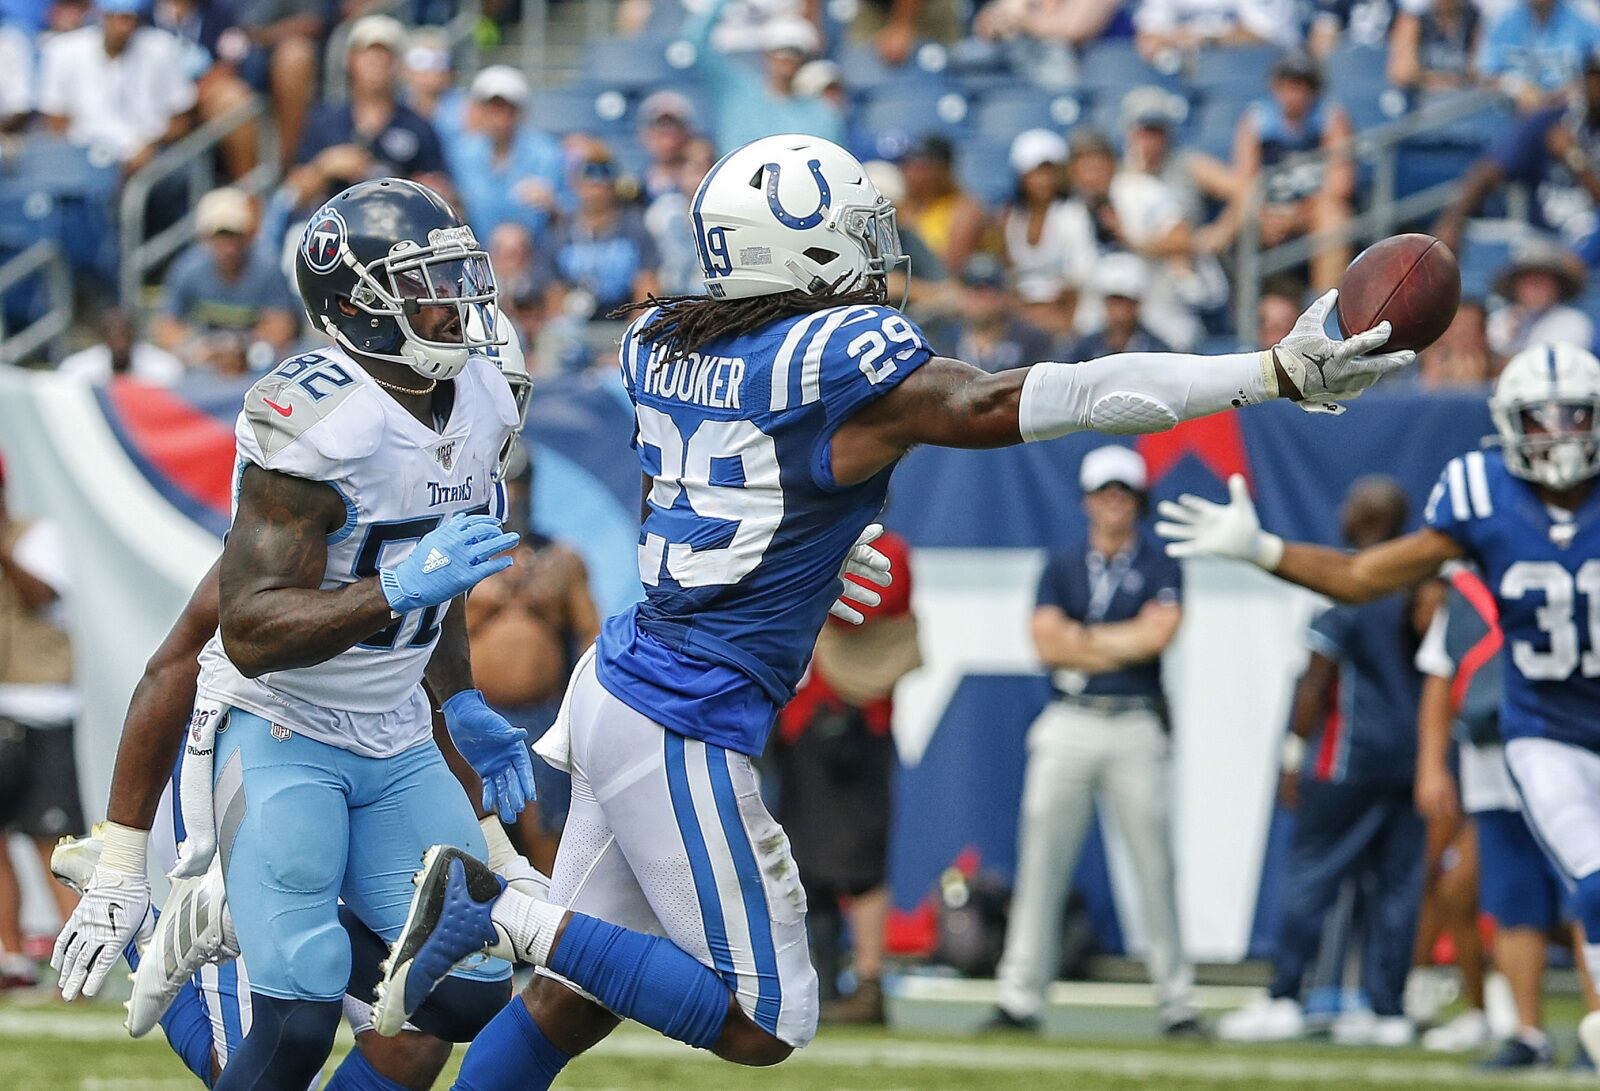 Colts coaches need to improve young players